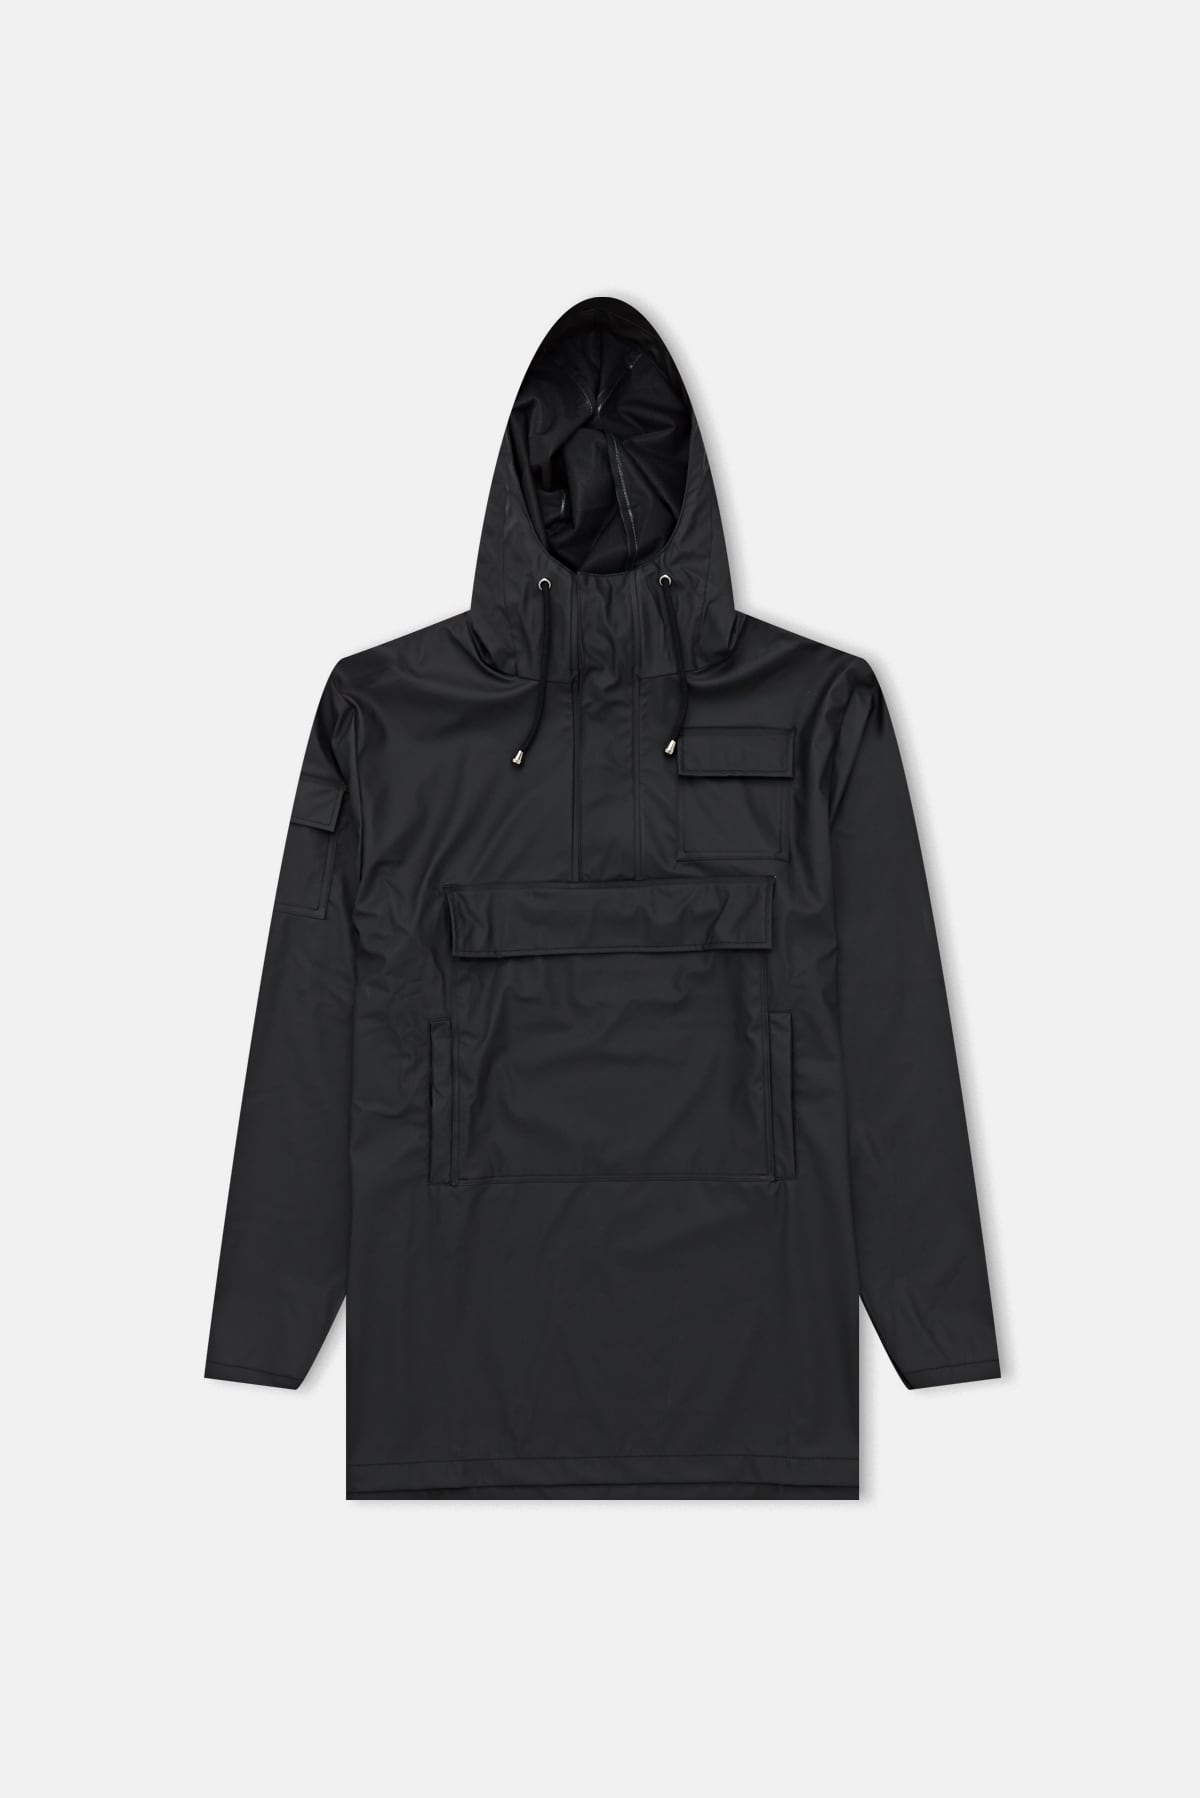 8e36bee70 Rains Camp Anorak Jacket available from Priory